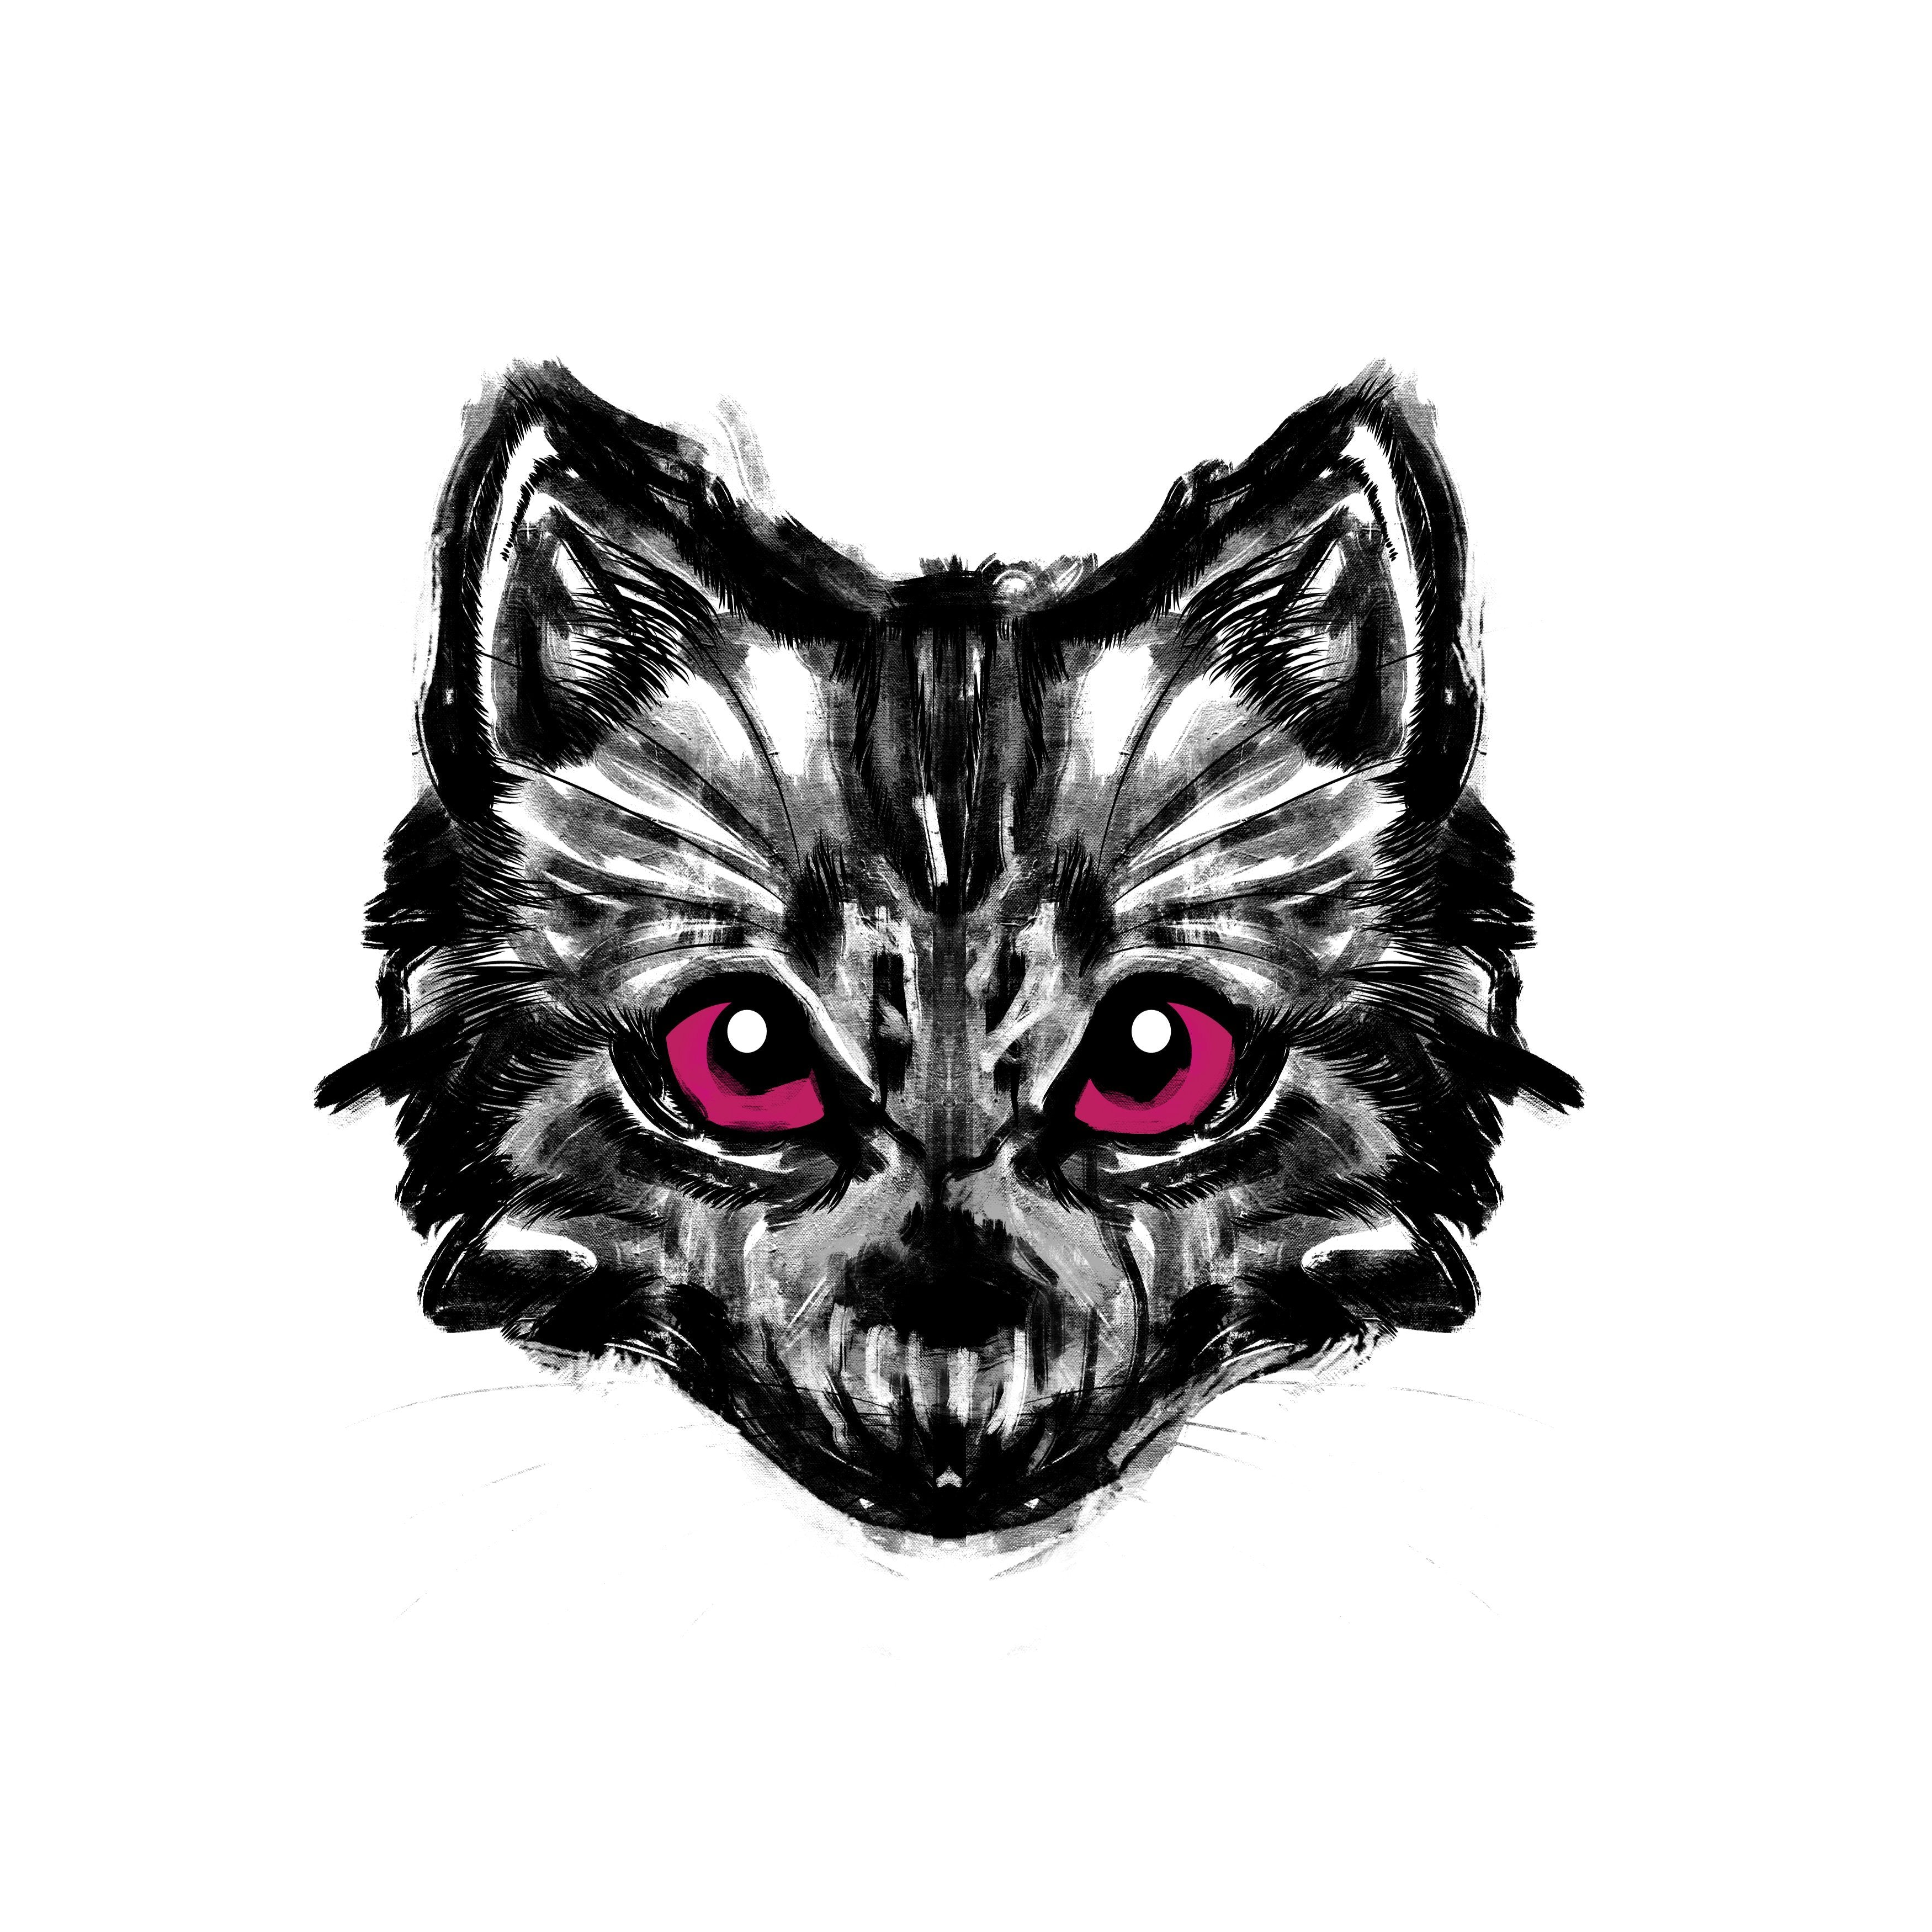 Cat Skull Temporary Tatoo Design. Tags: Animals, Abstract, Black and White,